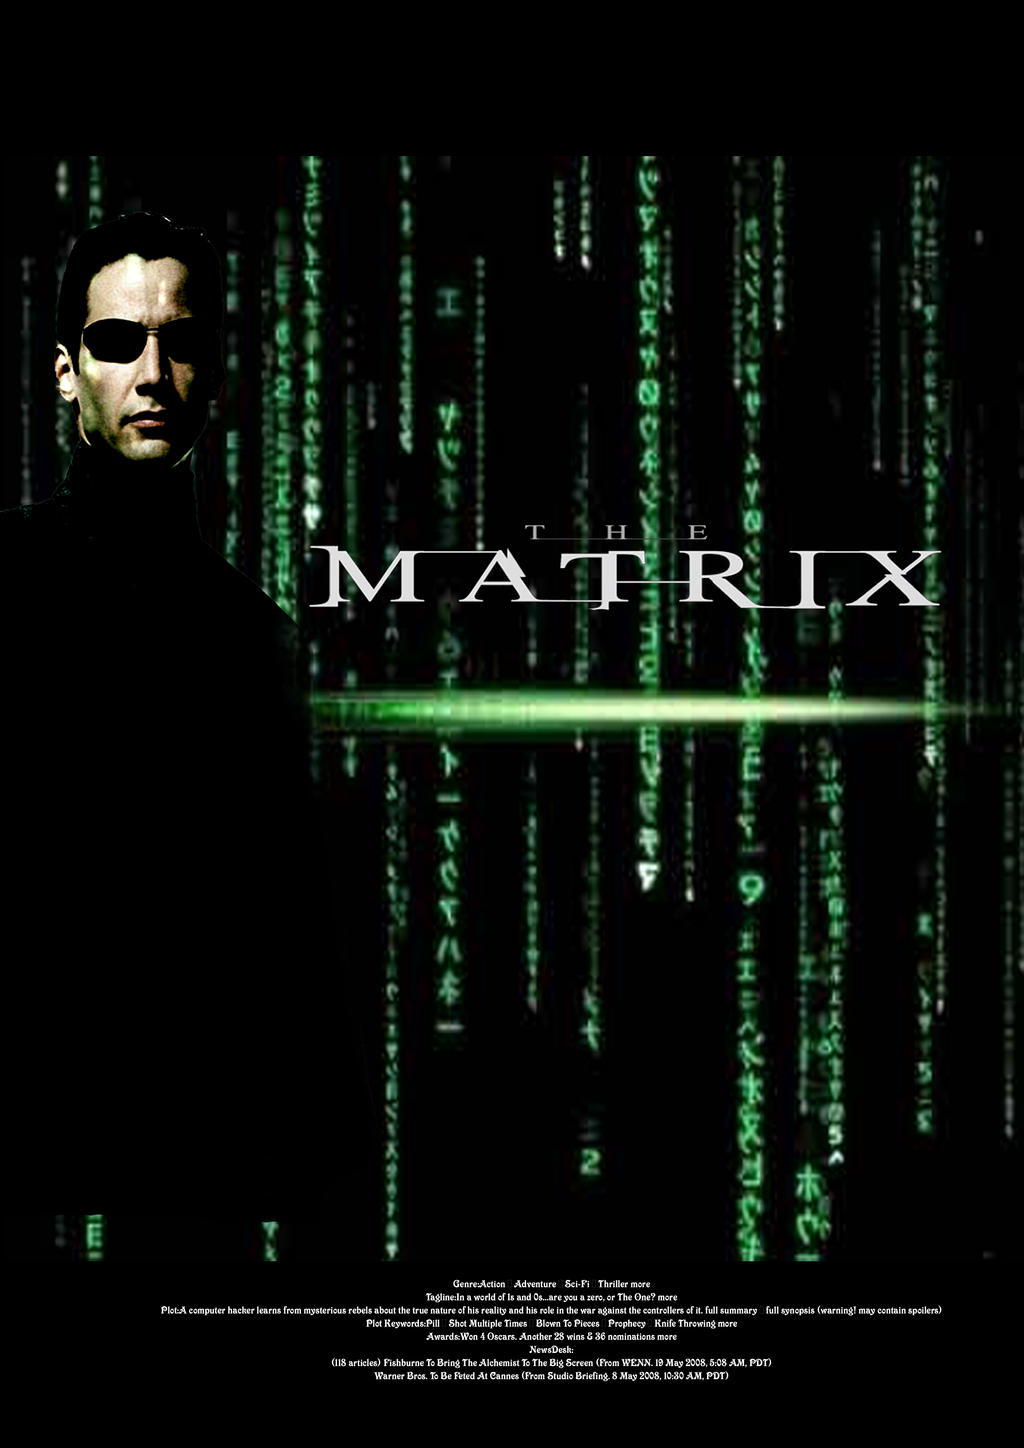 matrix movieposter by vincent0800 on DeviantArt